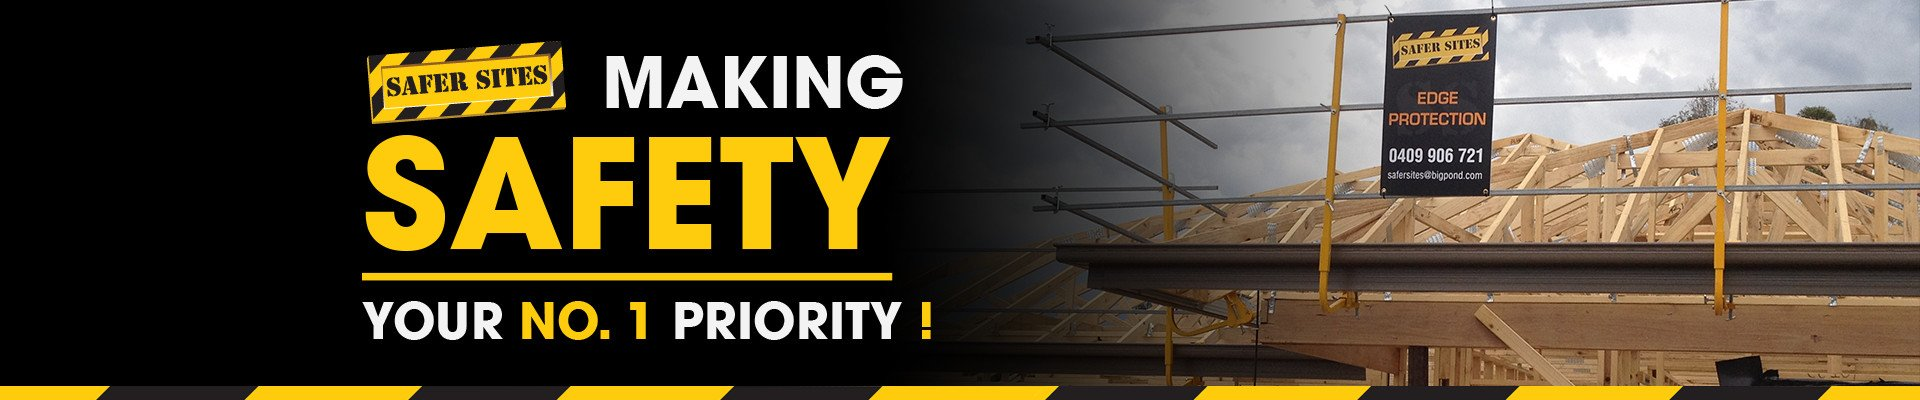 Safer Sites - MAKING SAFETY YOUR No. 1 PRIORITY!